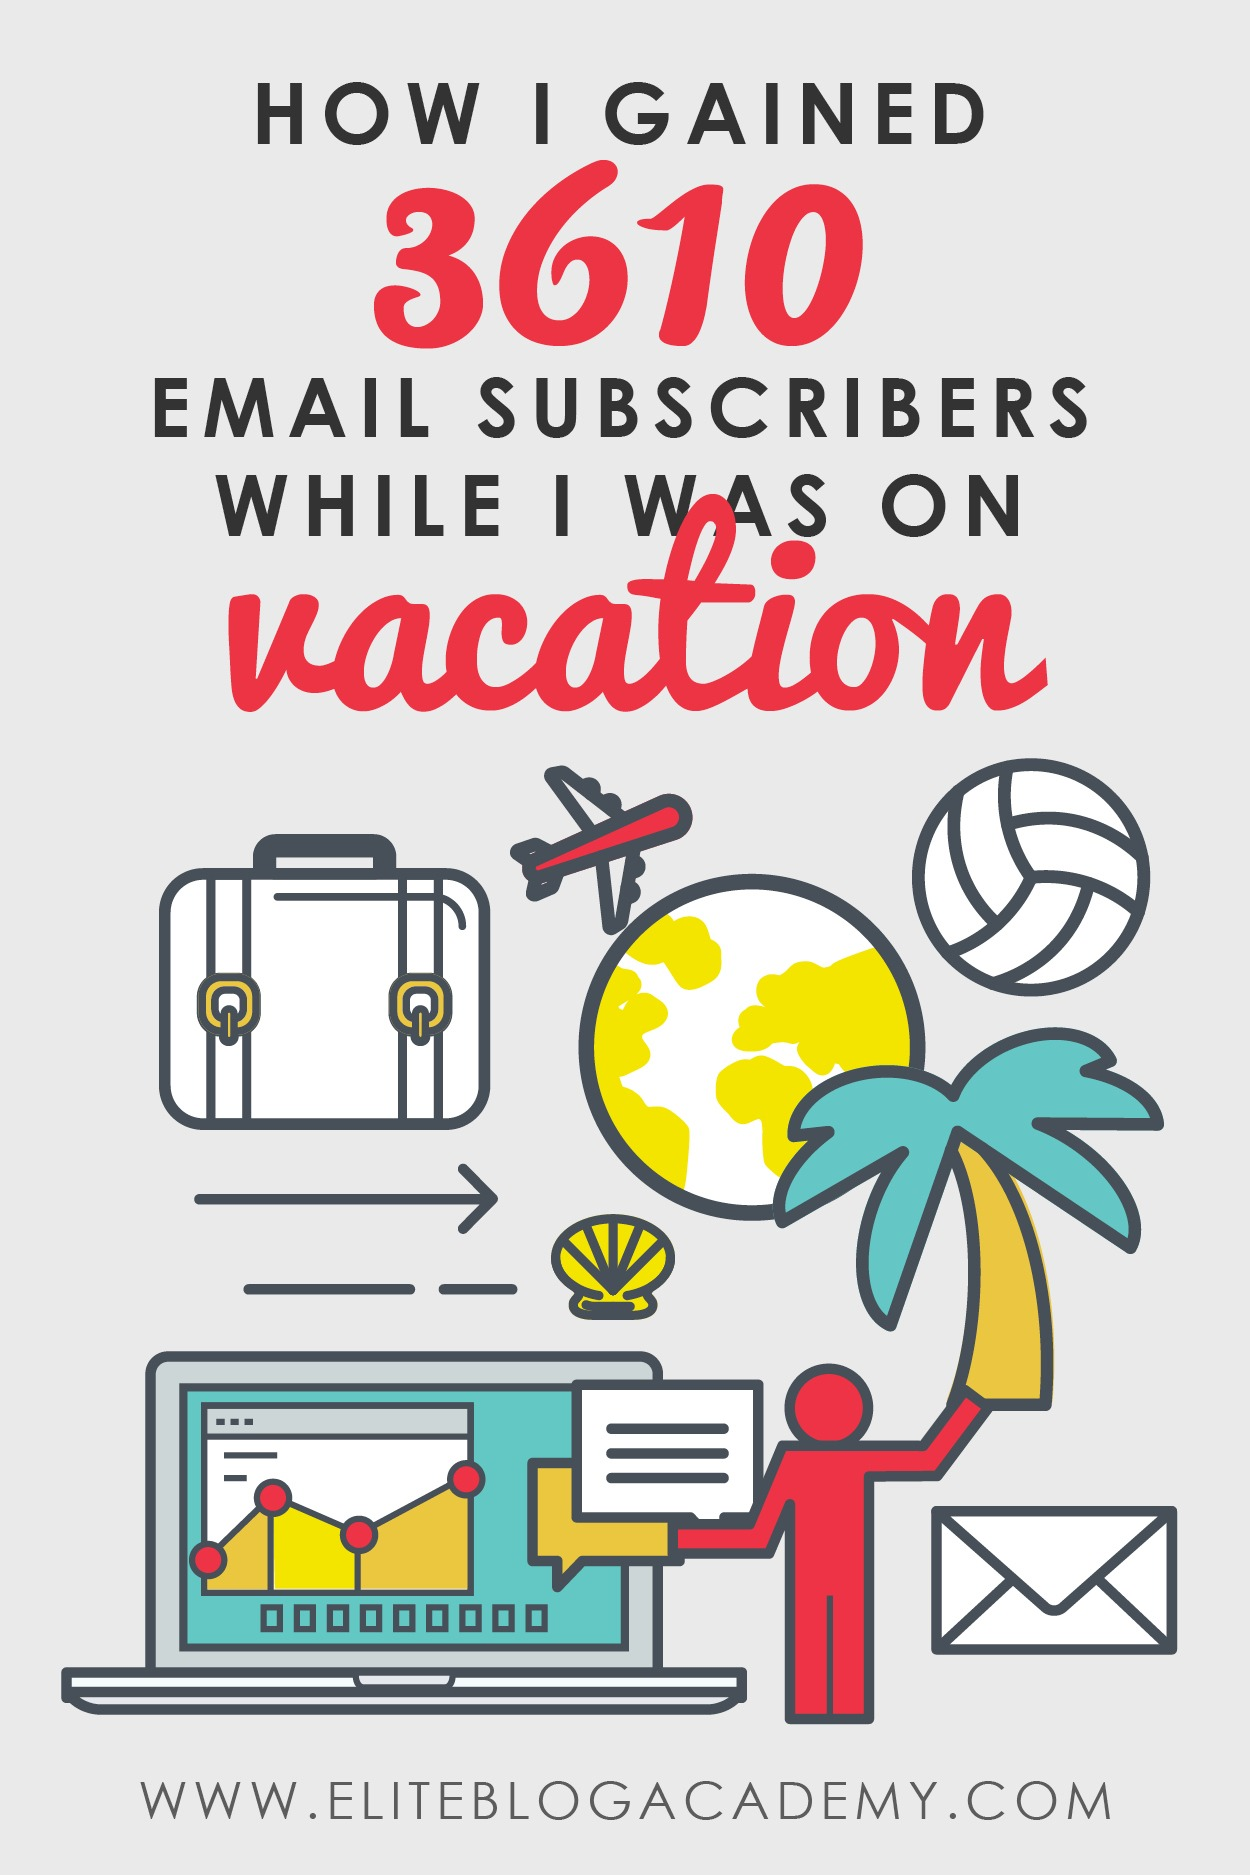 Want to know how to grow your email subscribers while you sleep? In this post, guest blogger Jennifer Marx shares the secrets to how she was able to grow her email list by 3610 subscribers while she was on vacation, and some simple ways that you can, too! #eliteblogacademy #makemoneyblogging #blogginghelp #growyouraudience